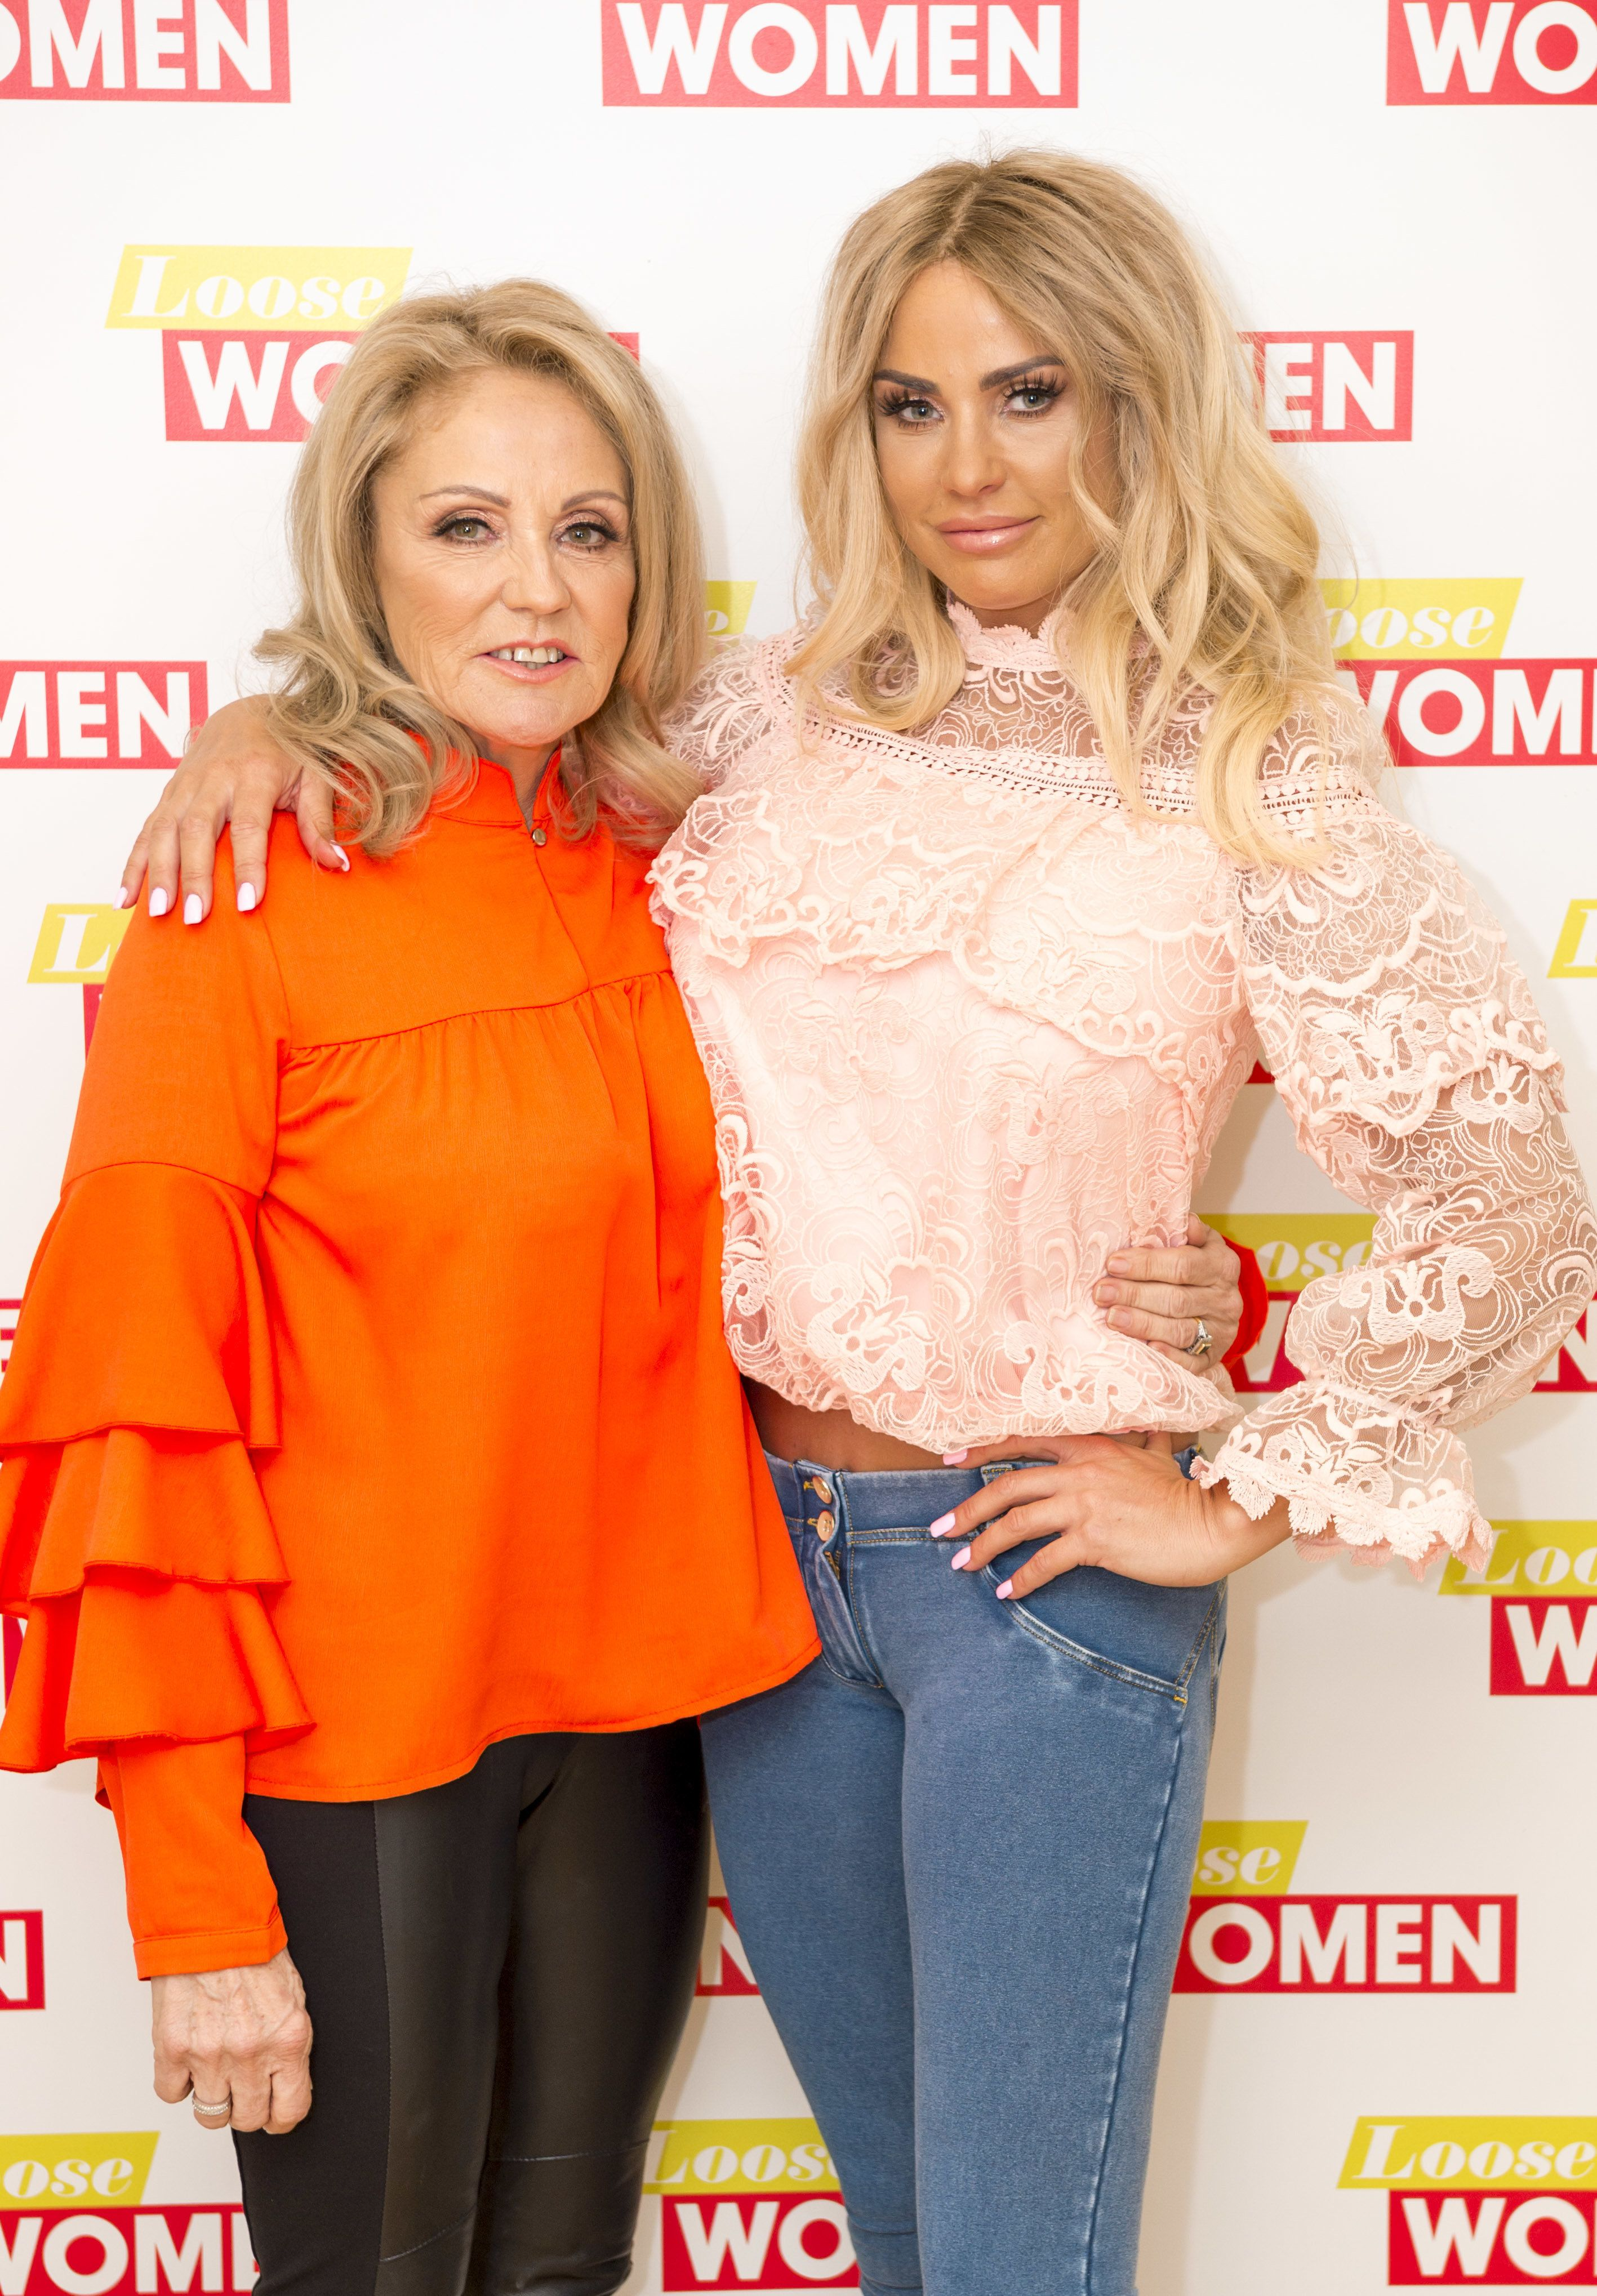 Katie Price Thanks Supporters After Her Mum Is Diagnosed With Incurable Lung Condition